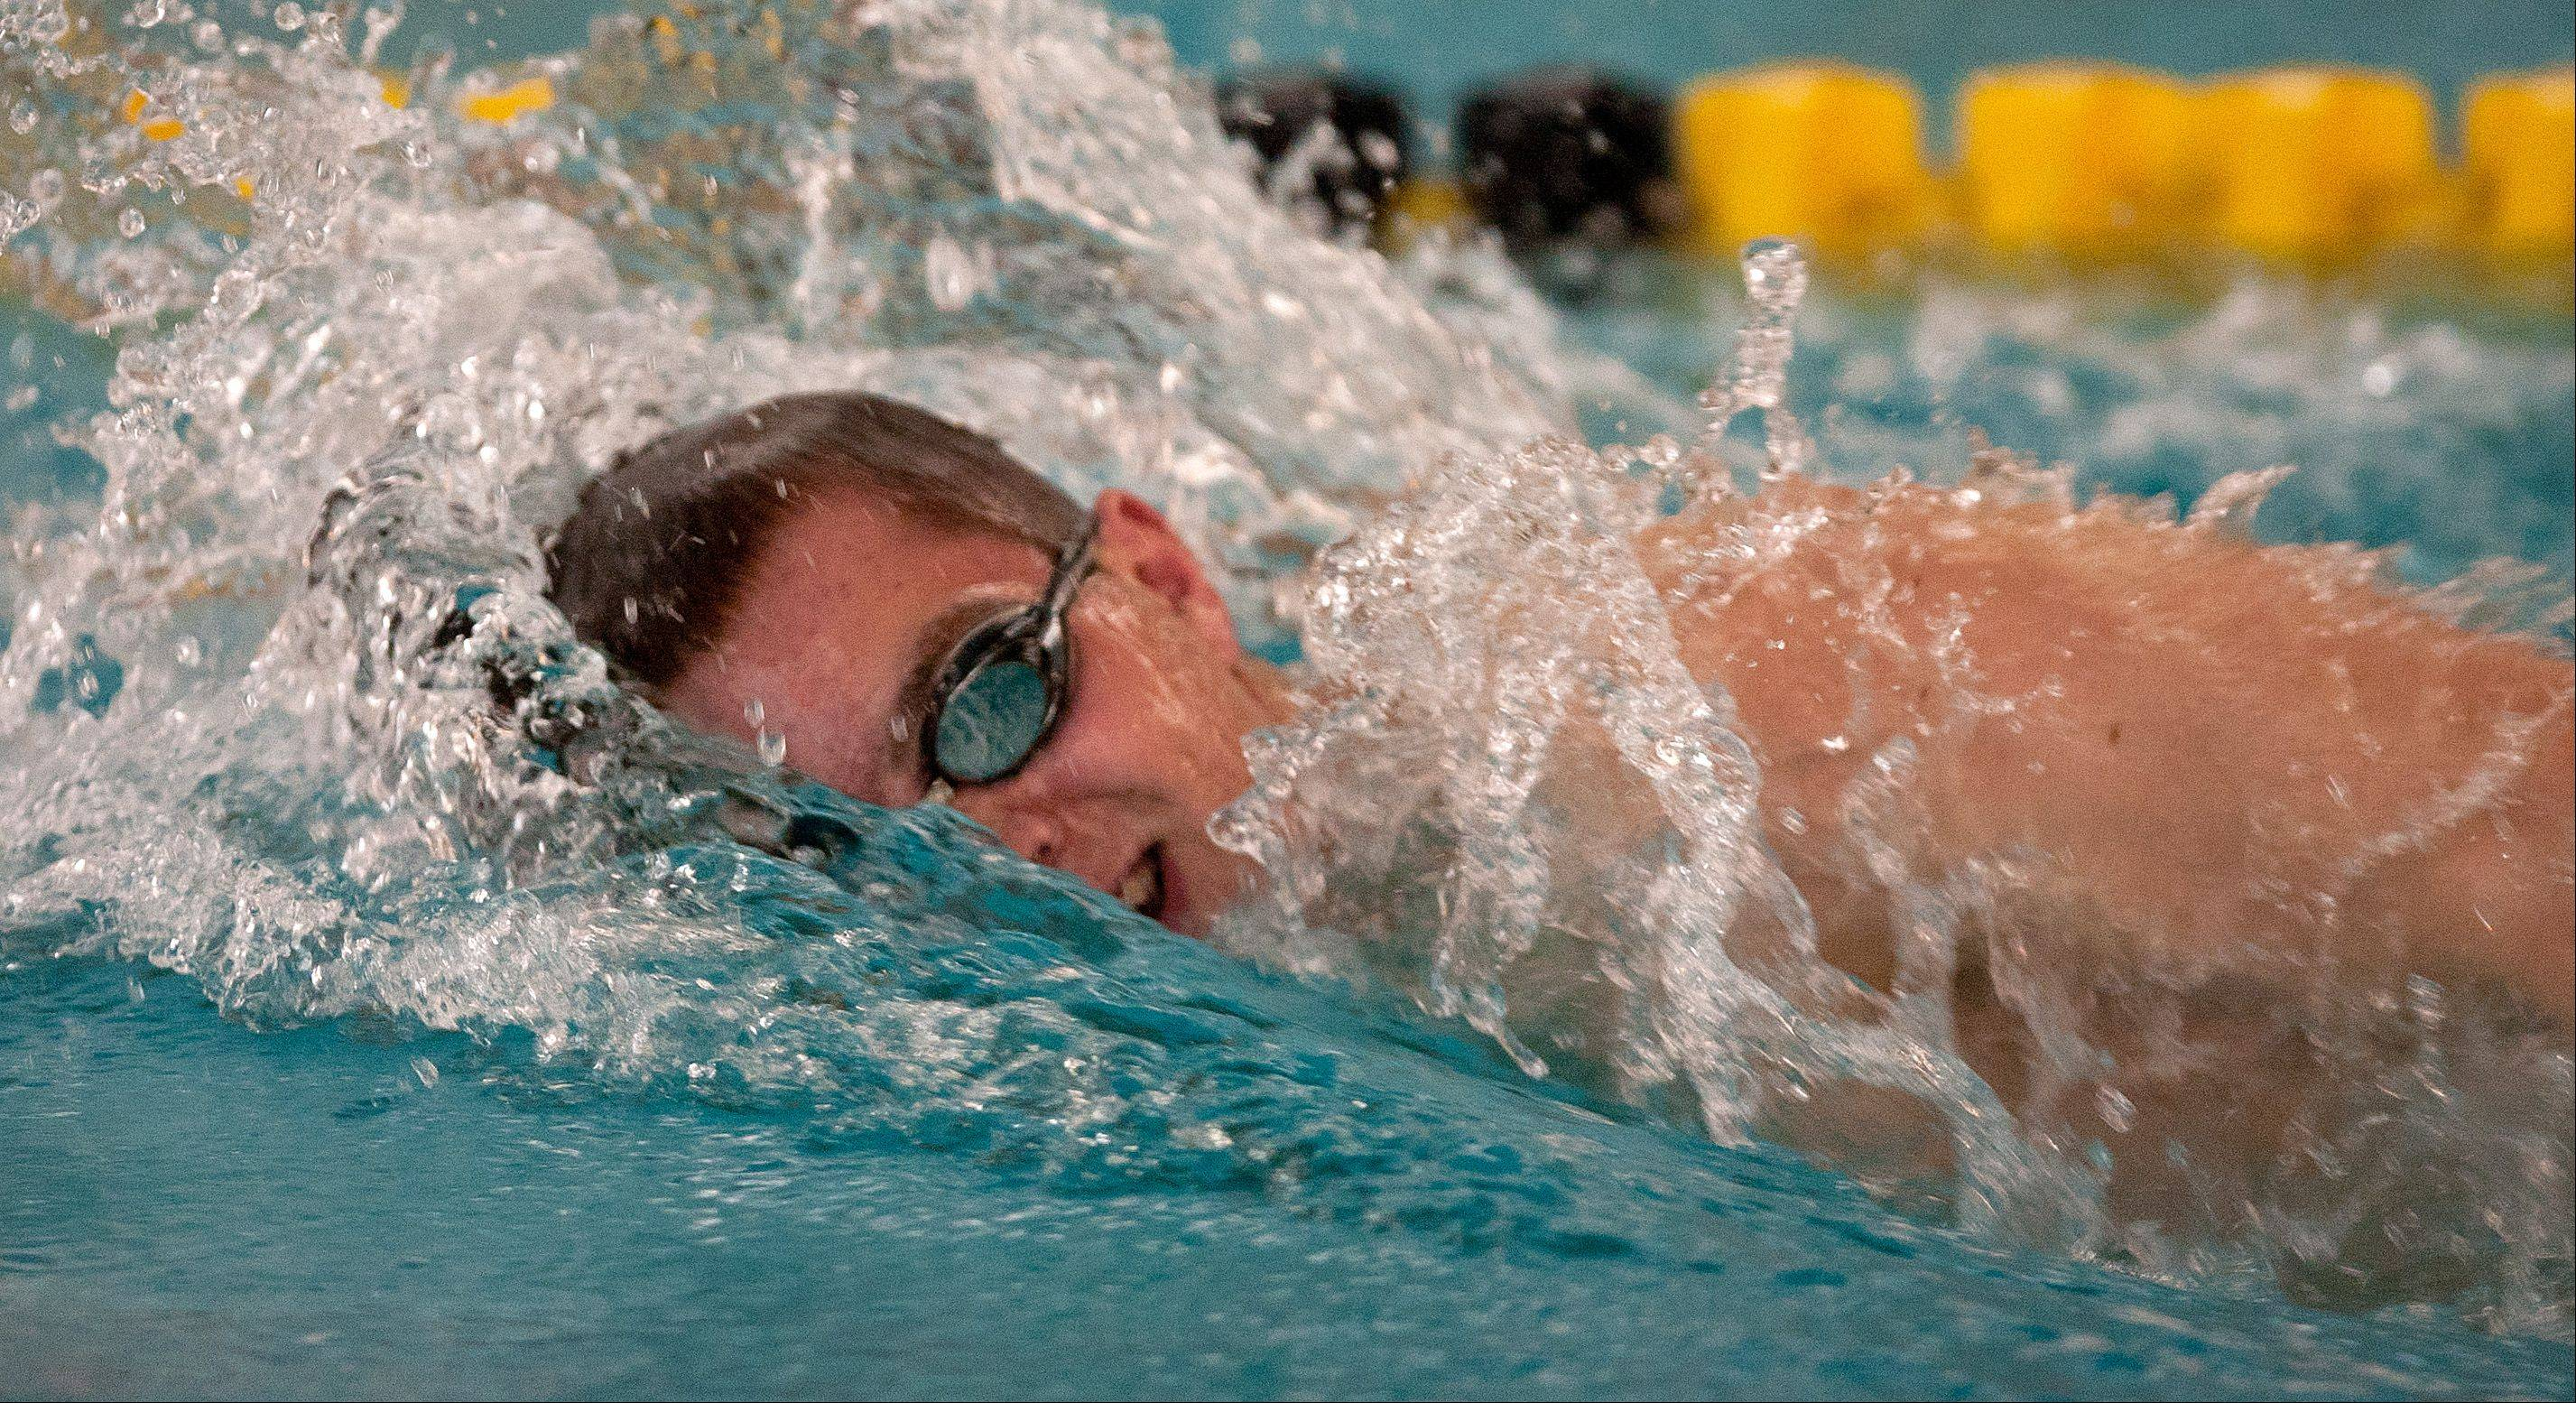 Adam Stacklin of Waubonsie Valley High School swims the 100 yard freestyle at the Mustang Swim and Dive Invite, hosted by Metea Valley High School.